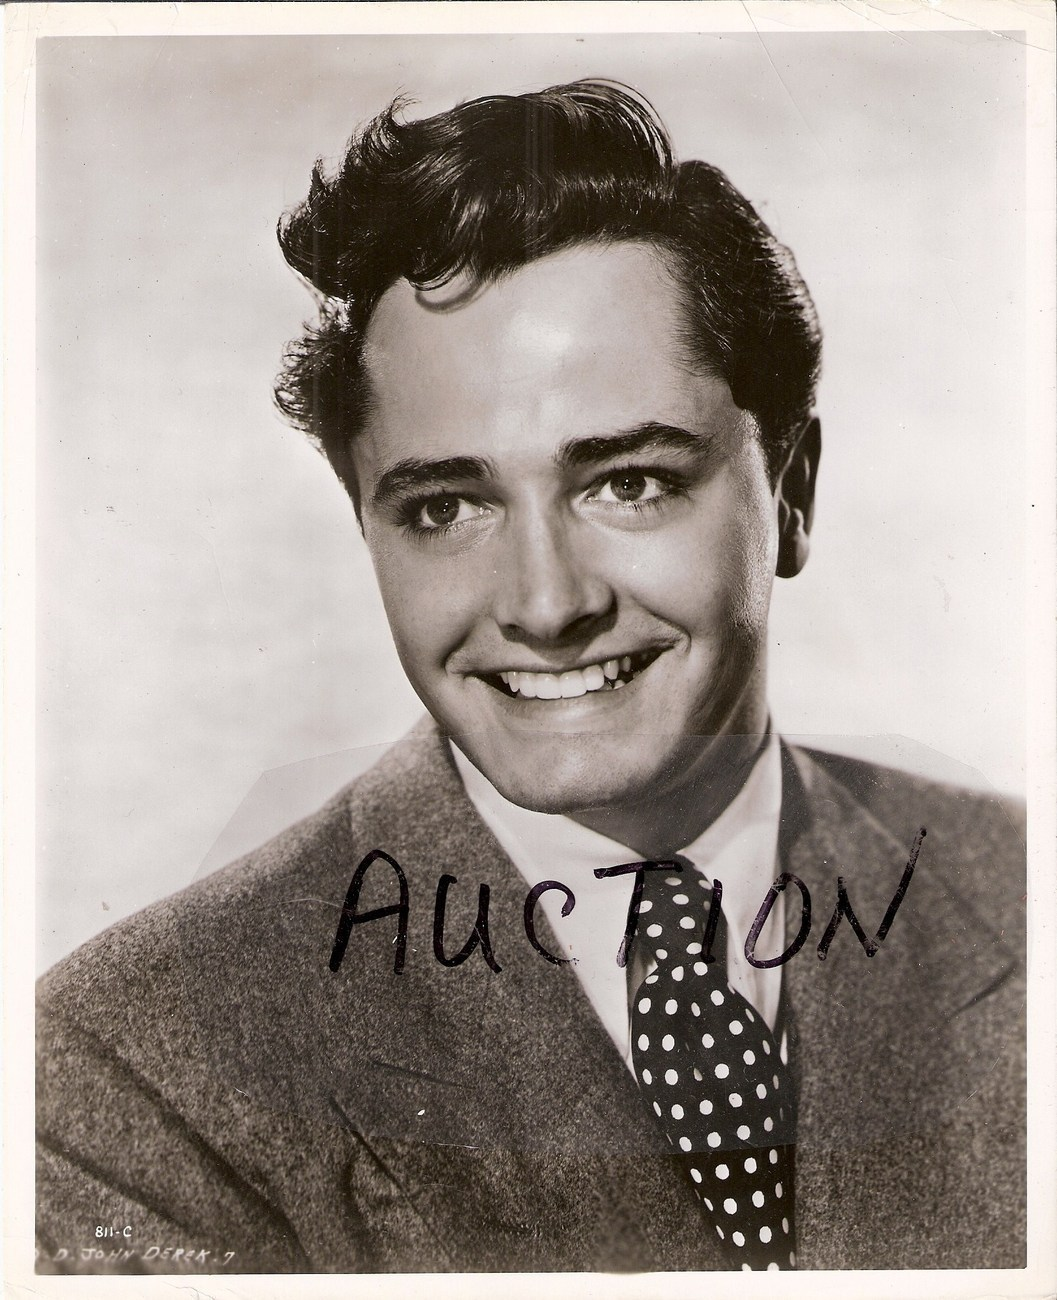 John Derek Wallpapers Home John Derek John Derek Vintage Original Photo Sexy Portrait